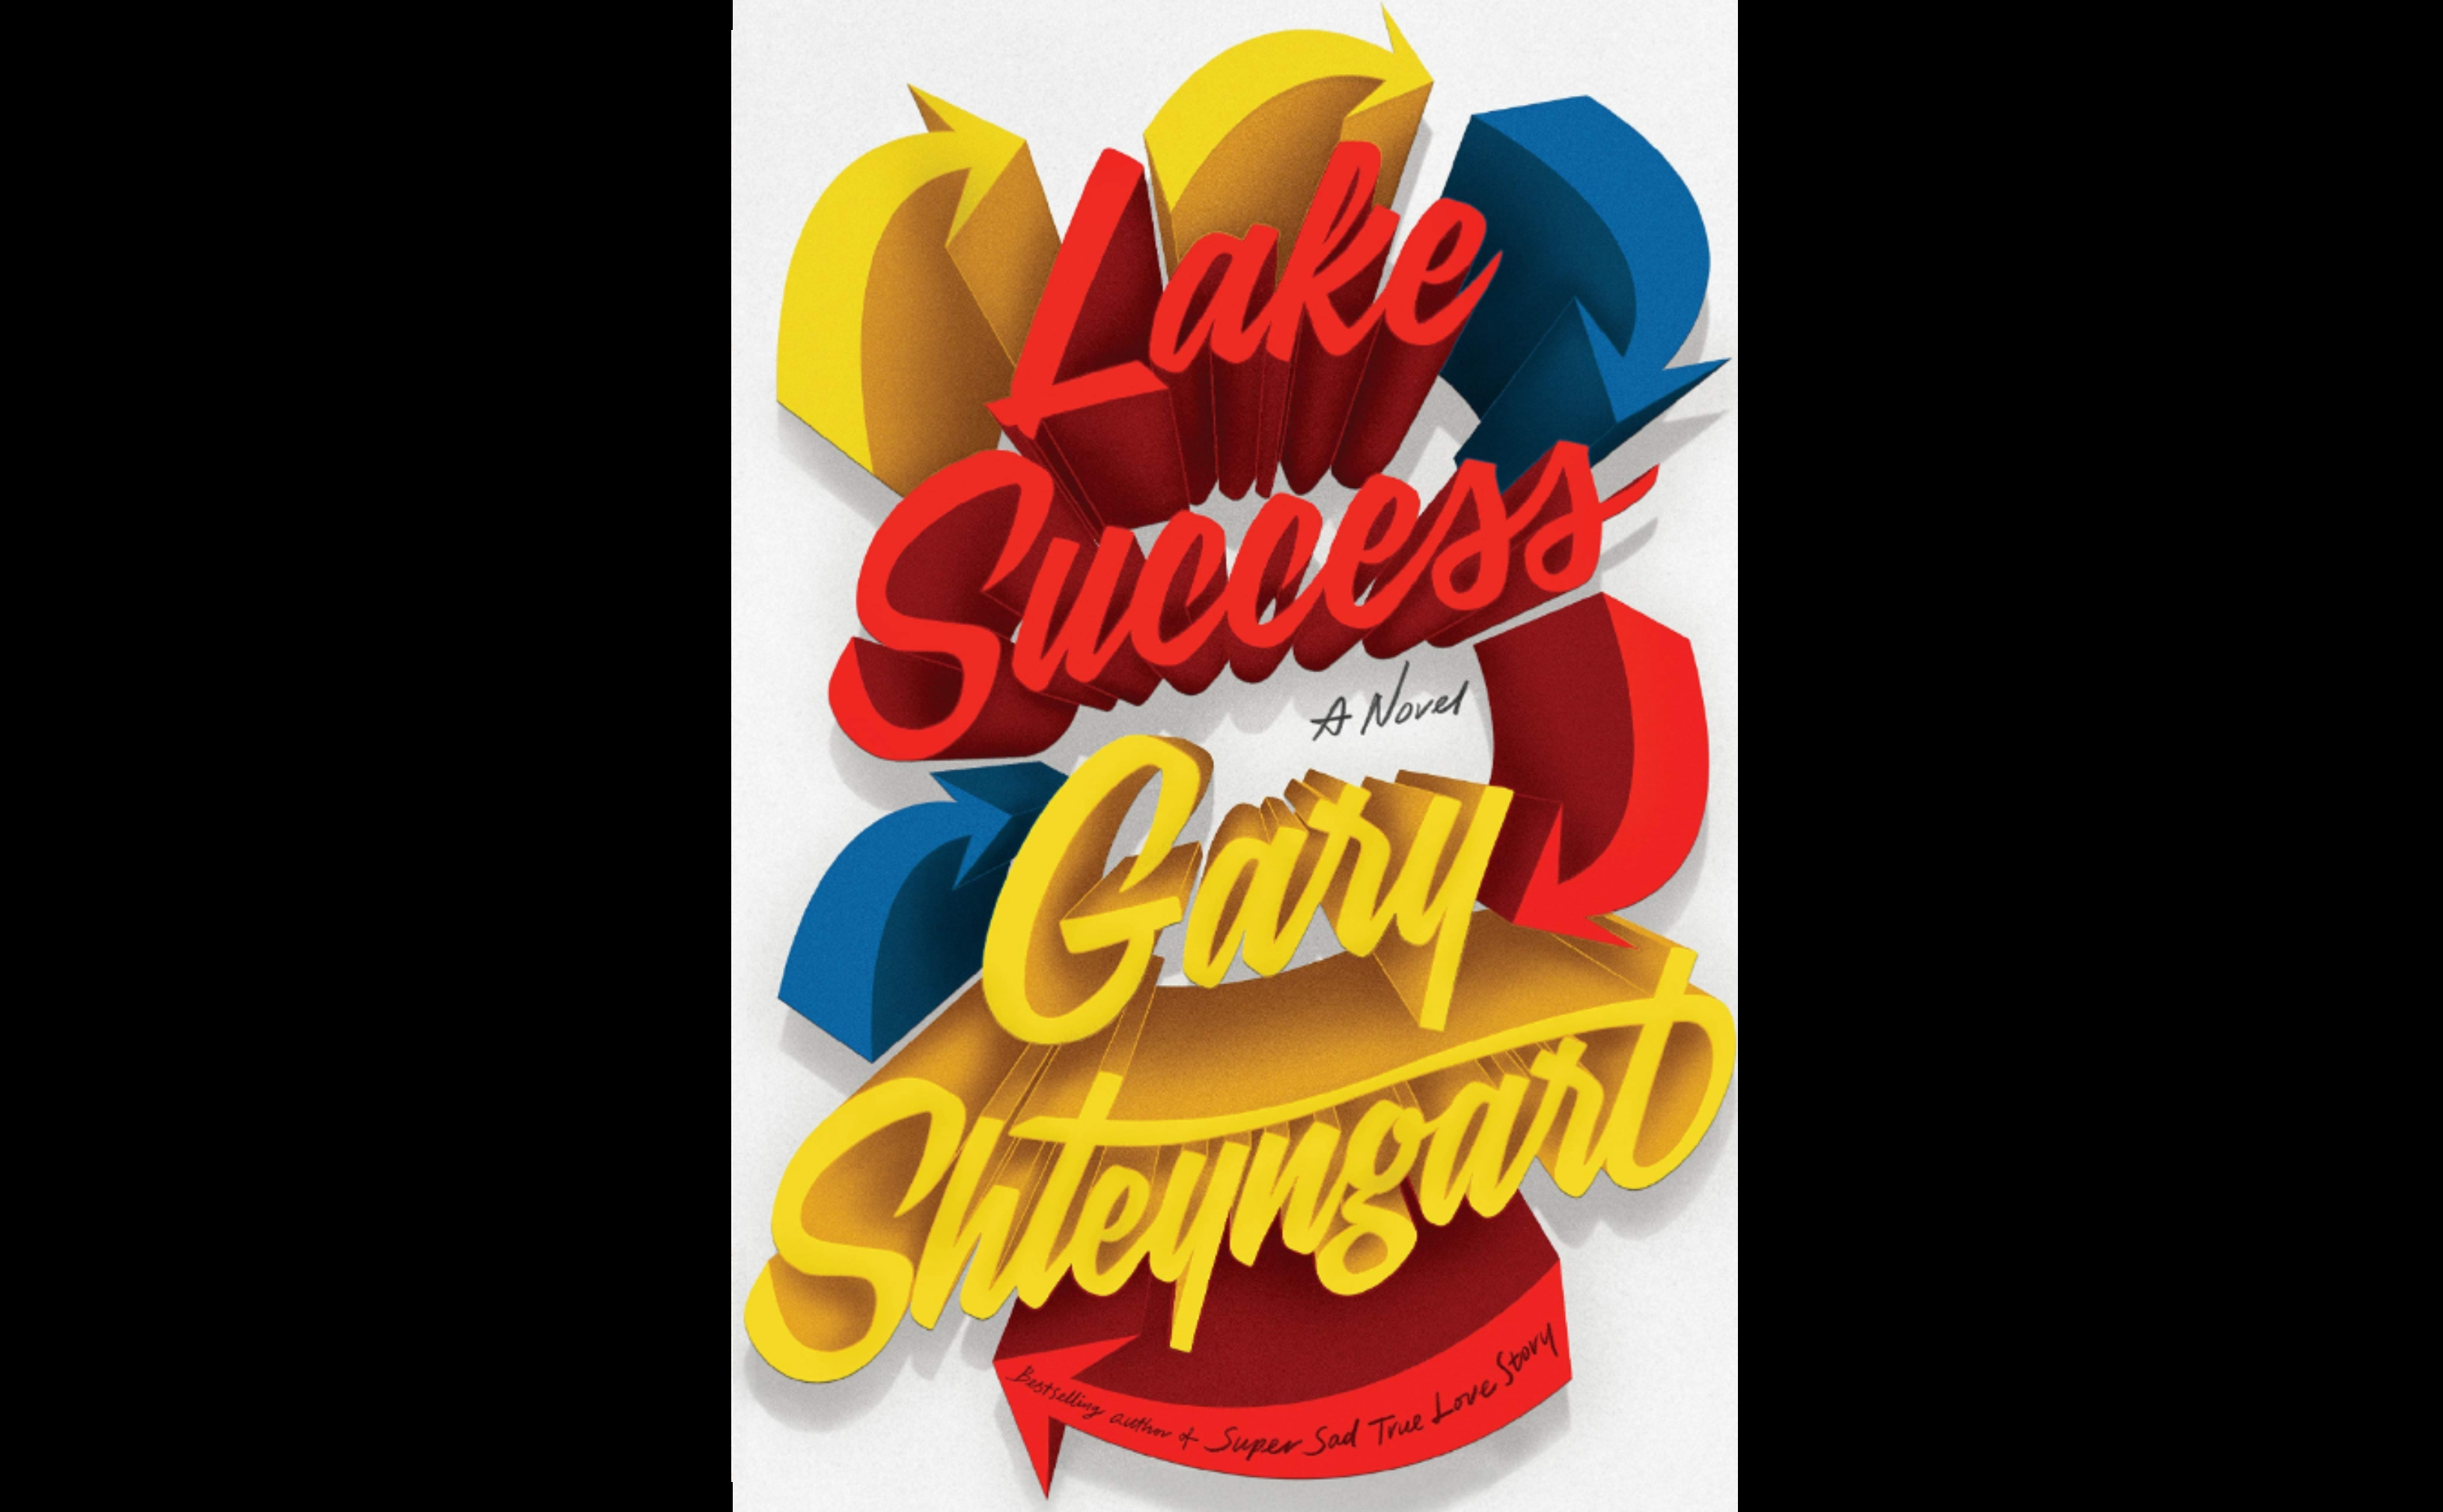 A Human Is Not a Remora: A Review of Gary Shteyngart's <i>Lake Success</i> Featured Image